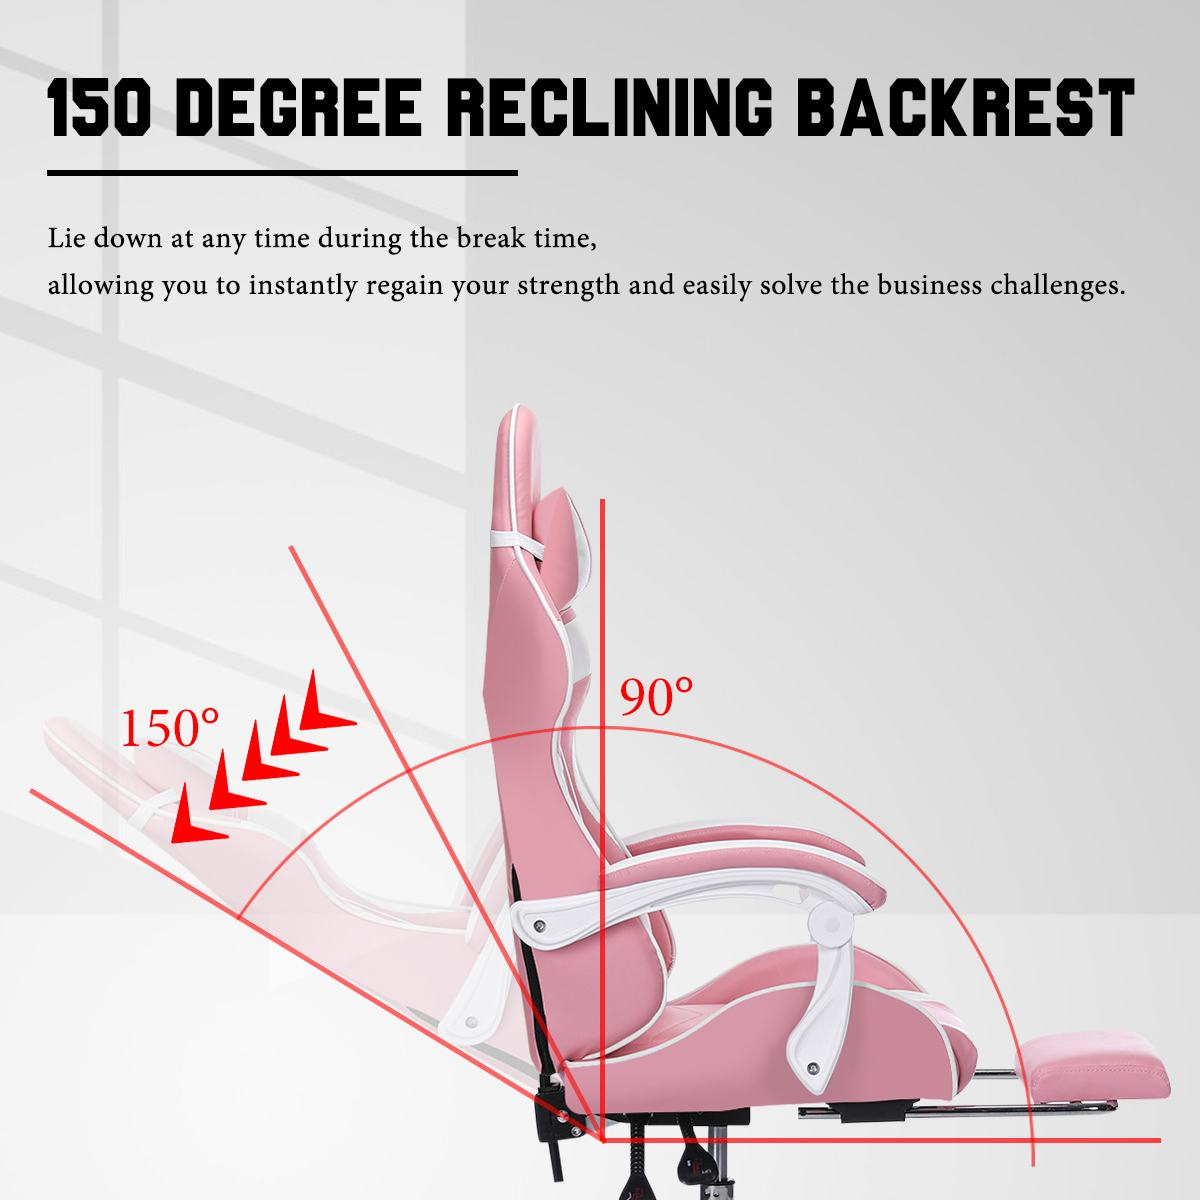 Hf237c8b685424590895a0efc5b9af8ffo - Office Computer Chair WCG Gaming Chair Pink Silla Leather Desk Chair Internet Cafe Gamer Chair Household Armchair Office Chair